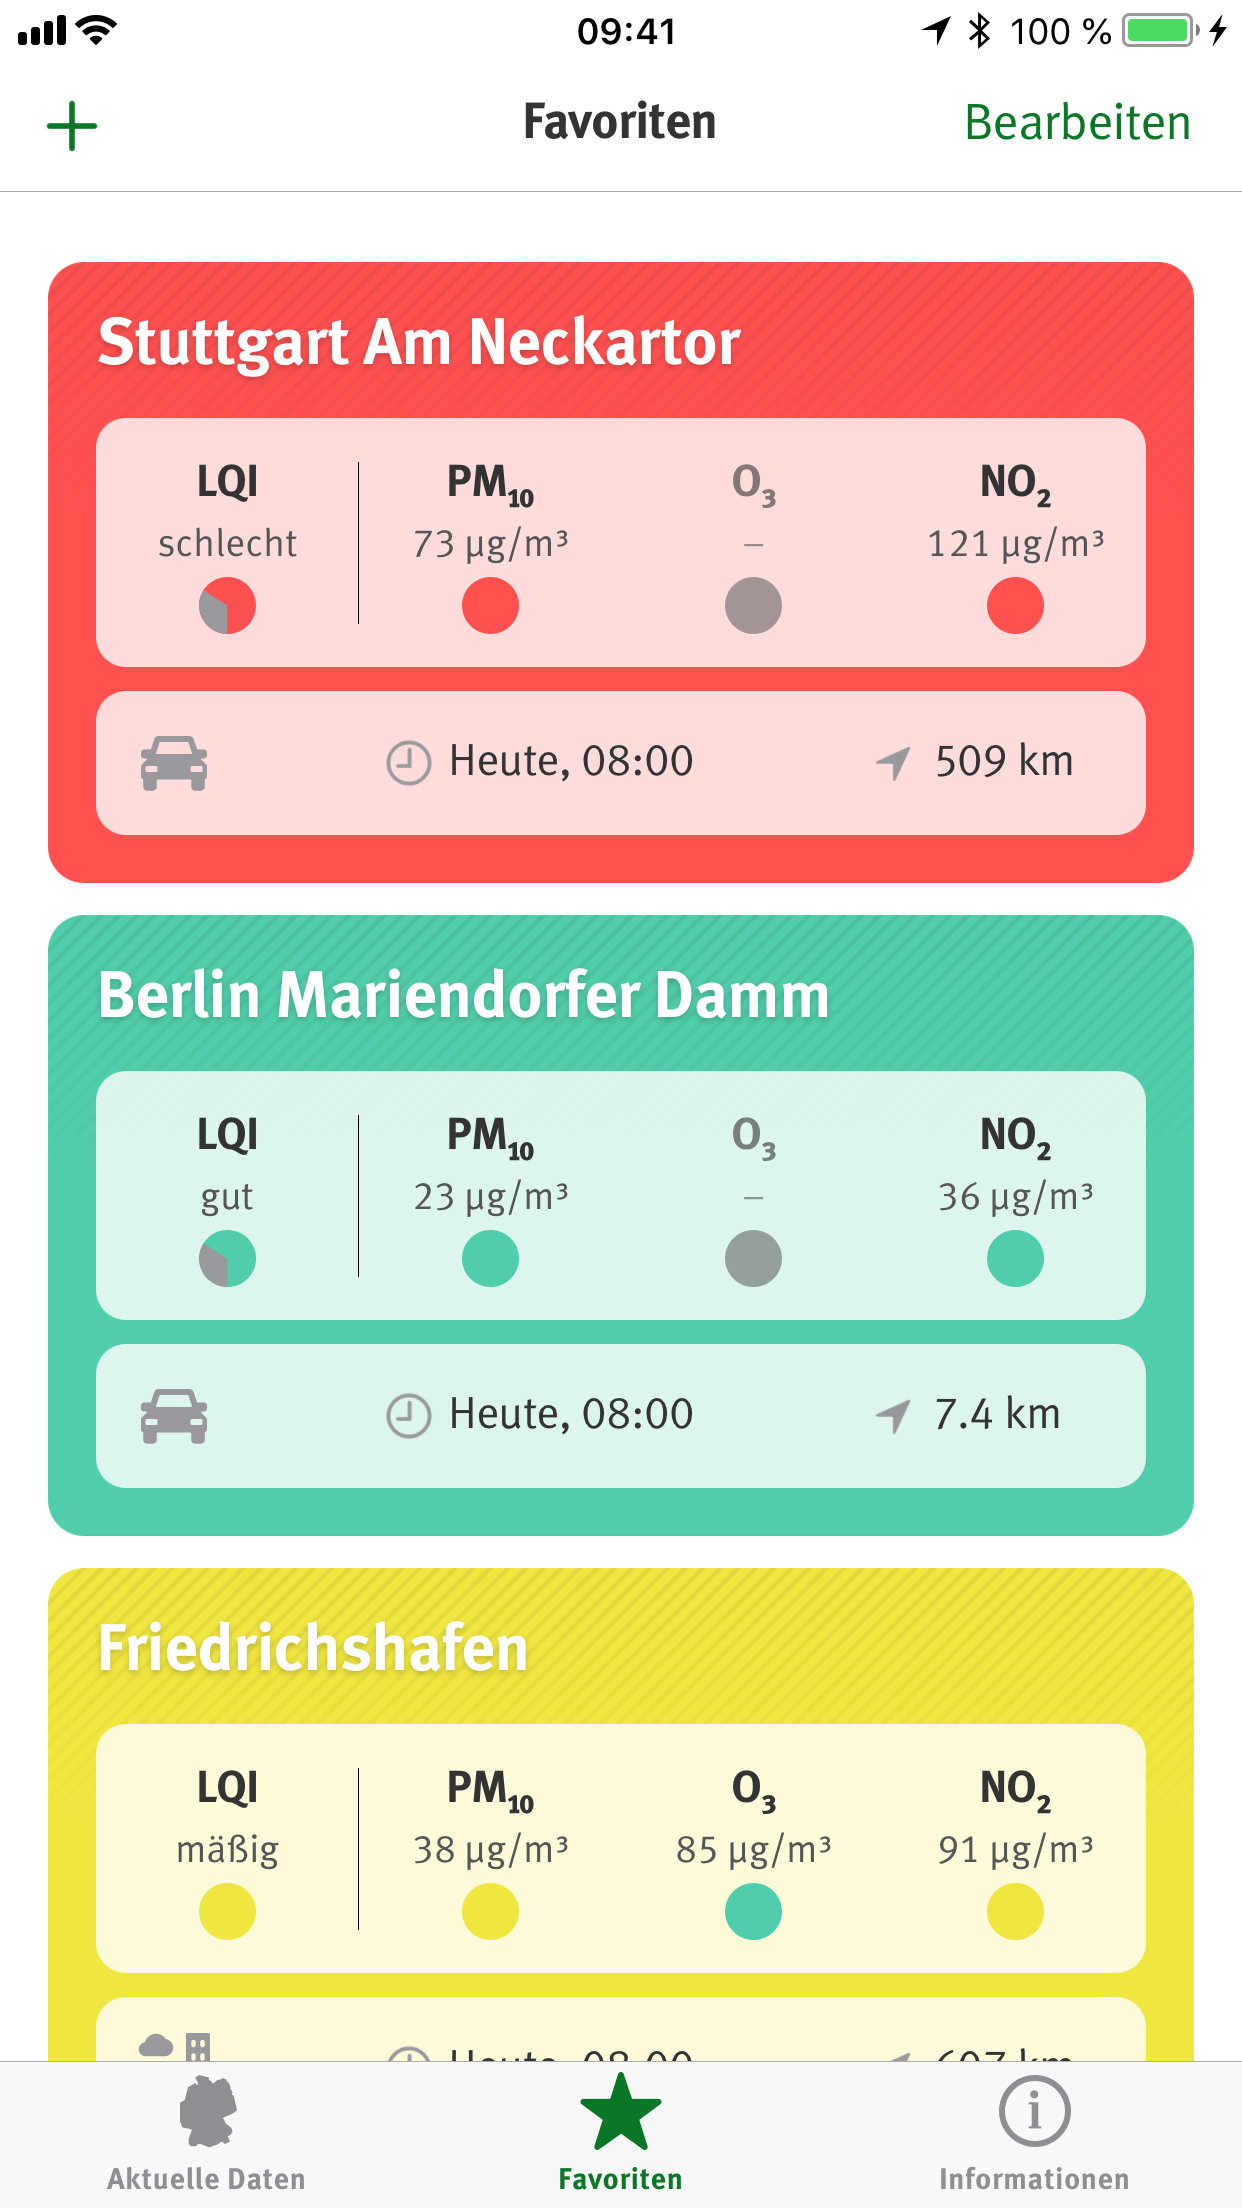 UBA Luftqualität App – Favoriten